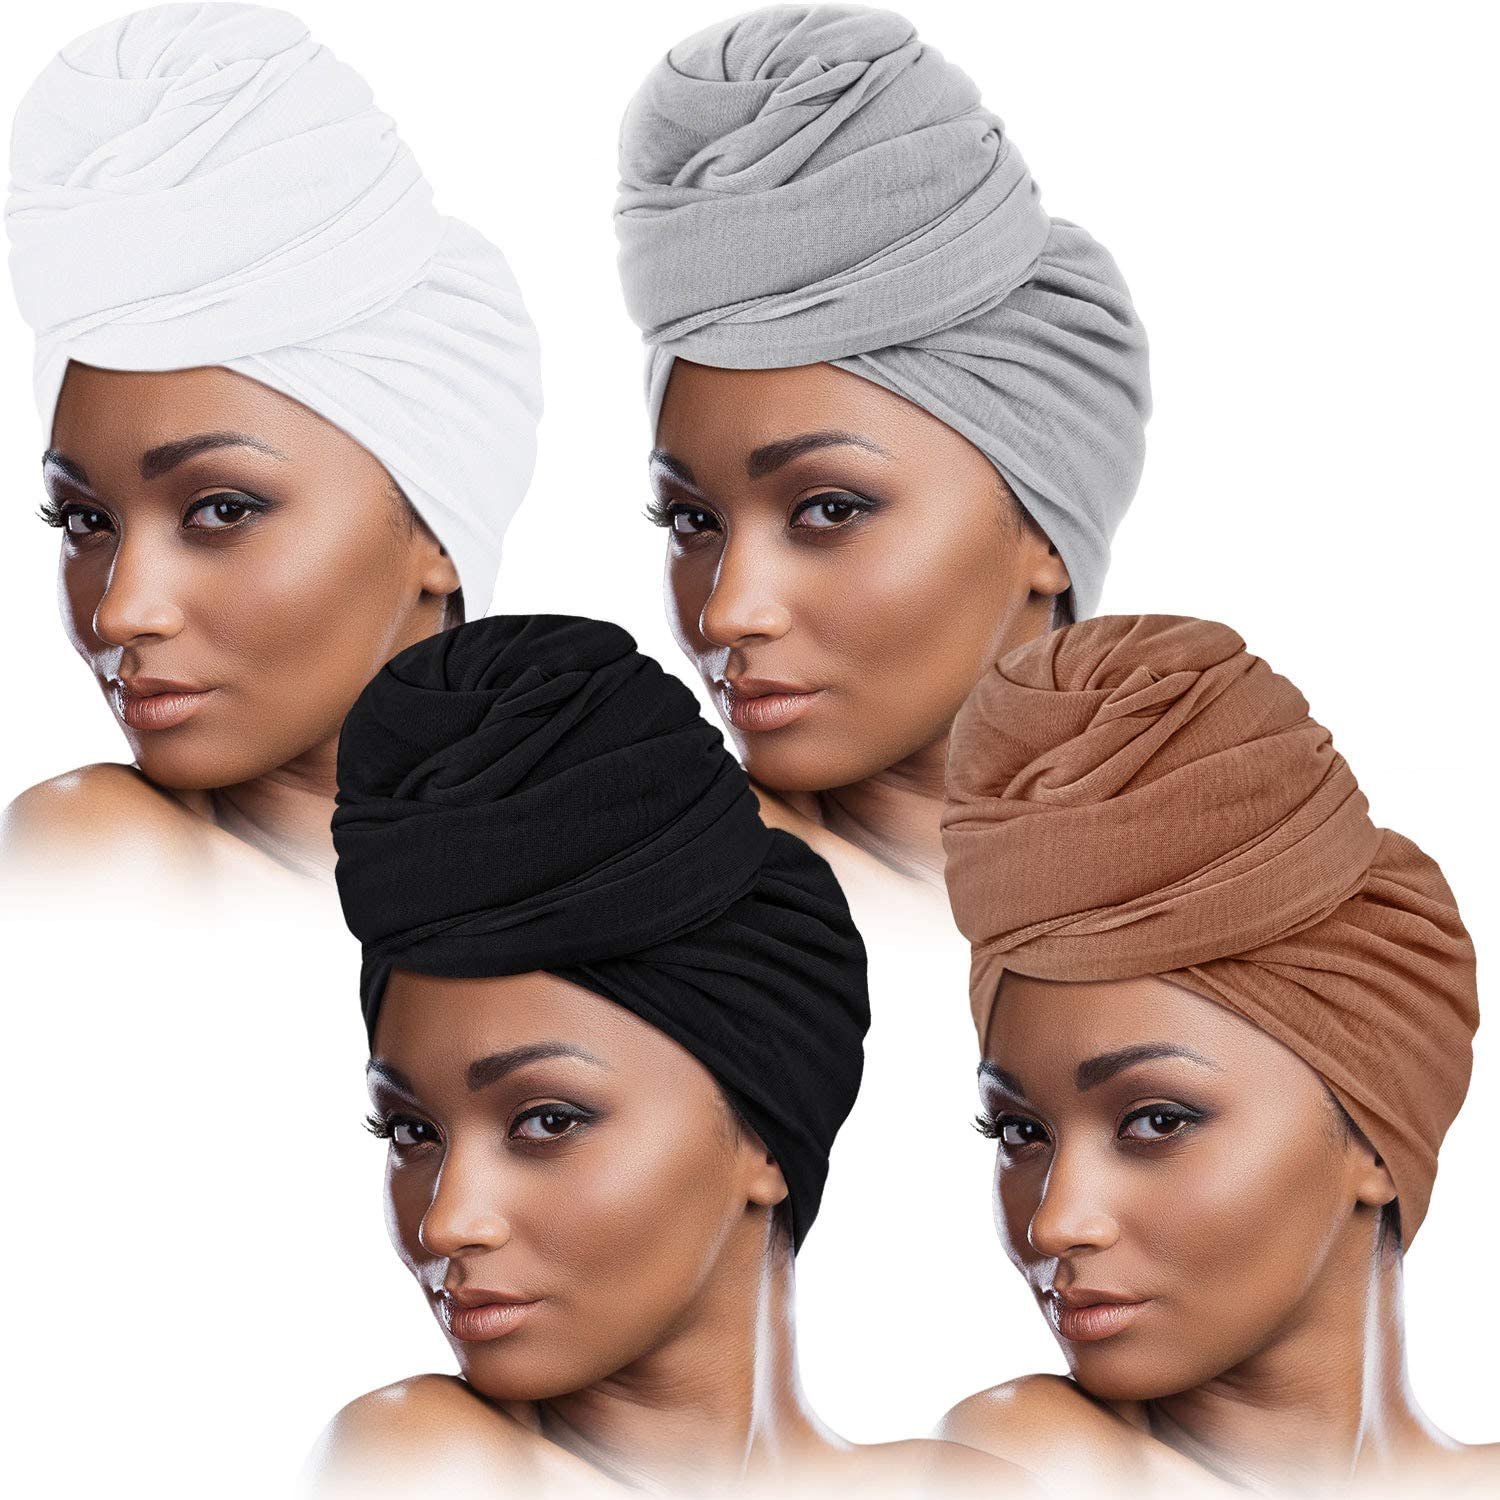 4 Pieces Head Wrap Scarf Stretch Turban for Women Long Hair Scarf Wrap Soft  Head Band Tie African Head Wraps at Amazon Women's Clothing store